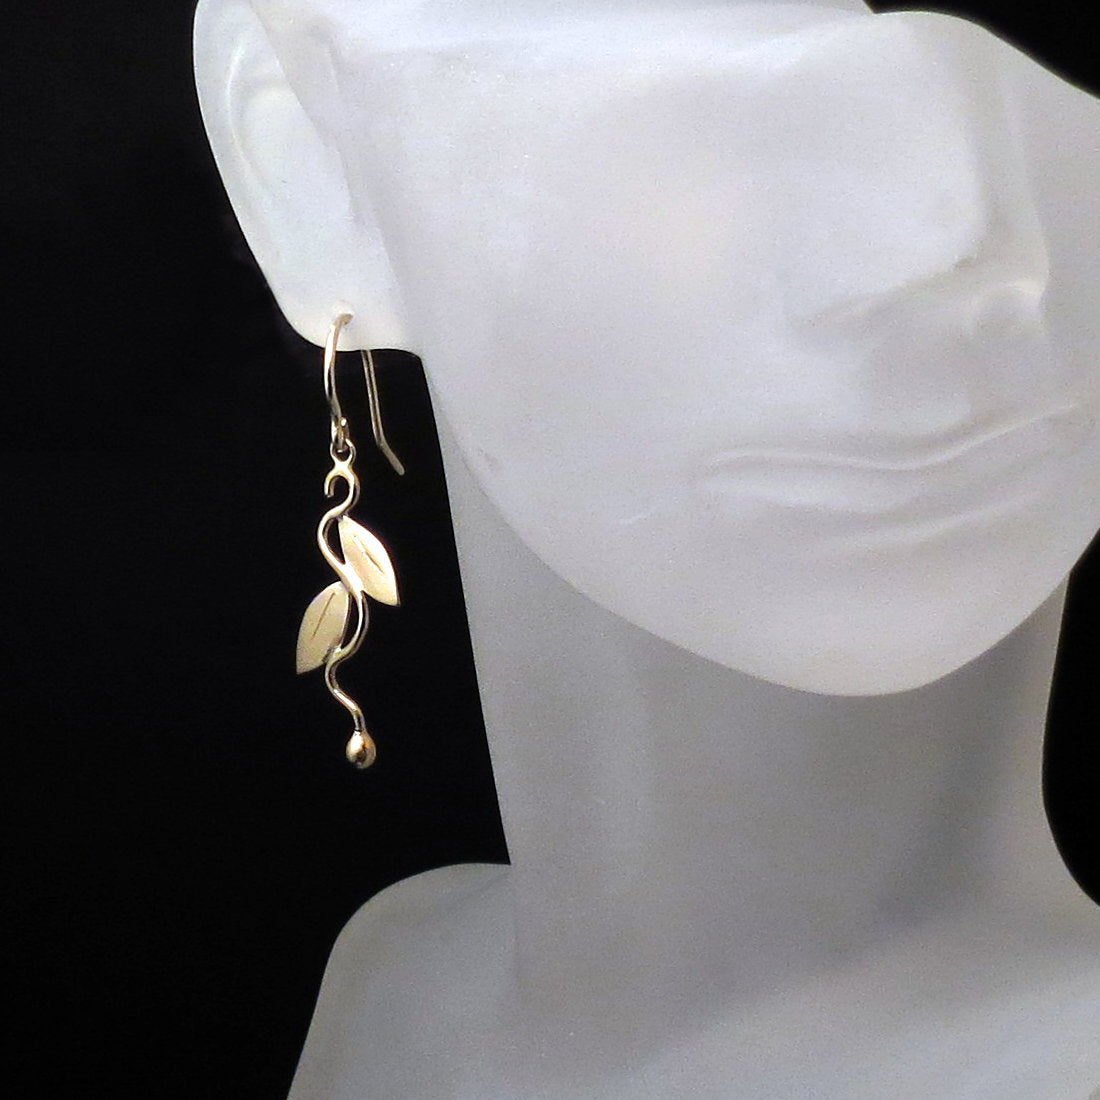 Leaf Design Dangle Earrings in 14K Gold